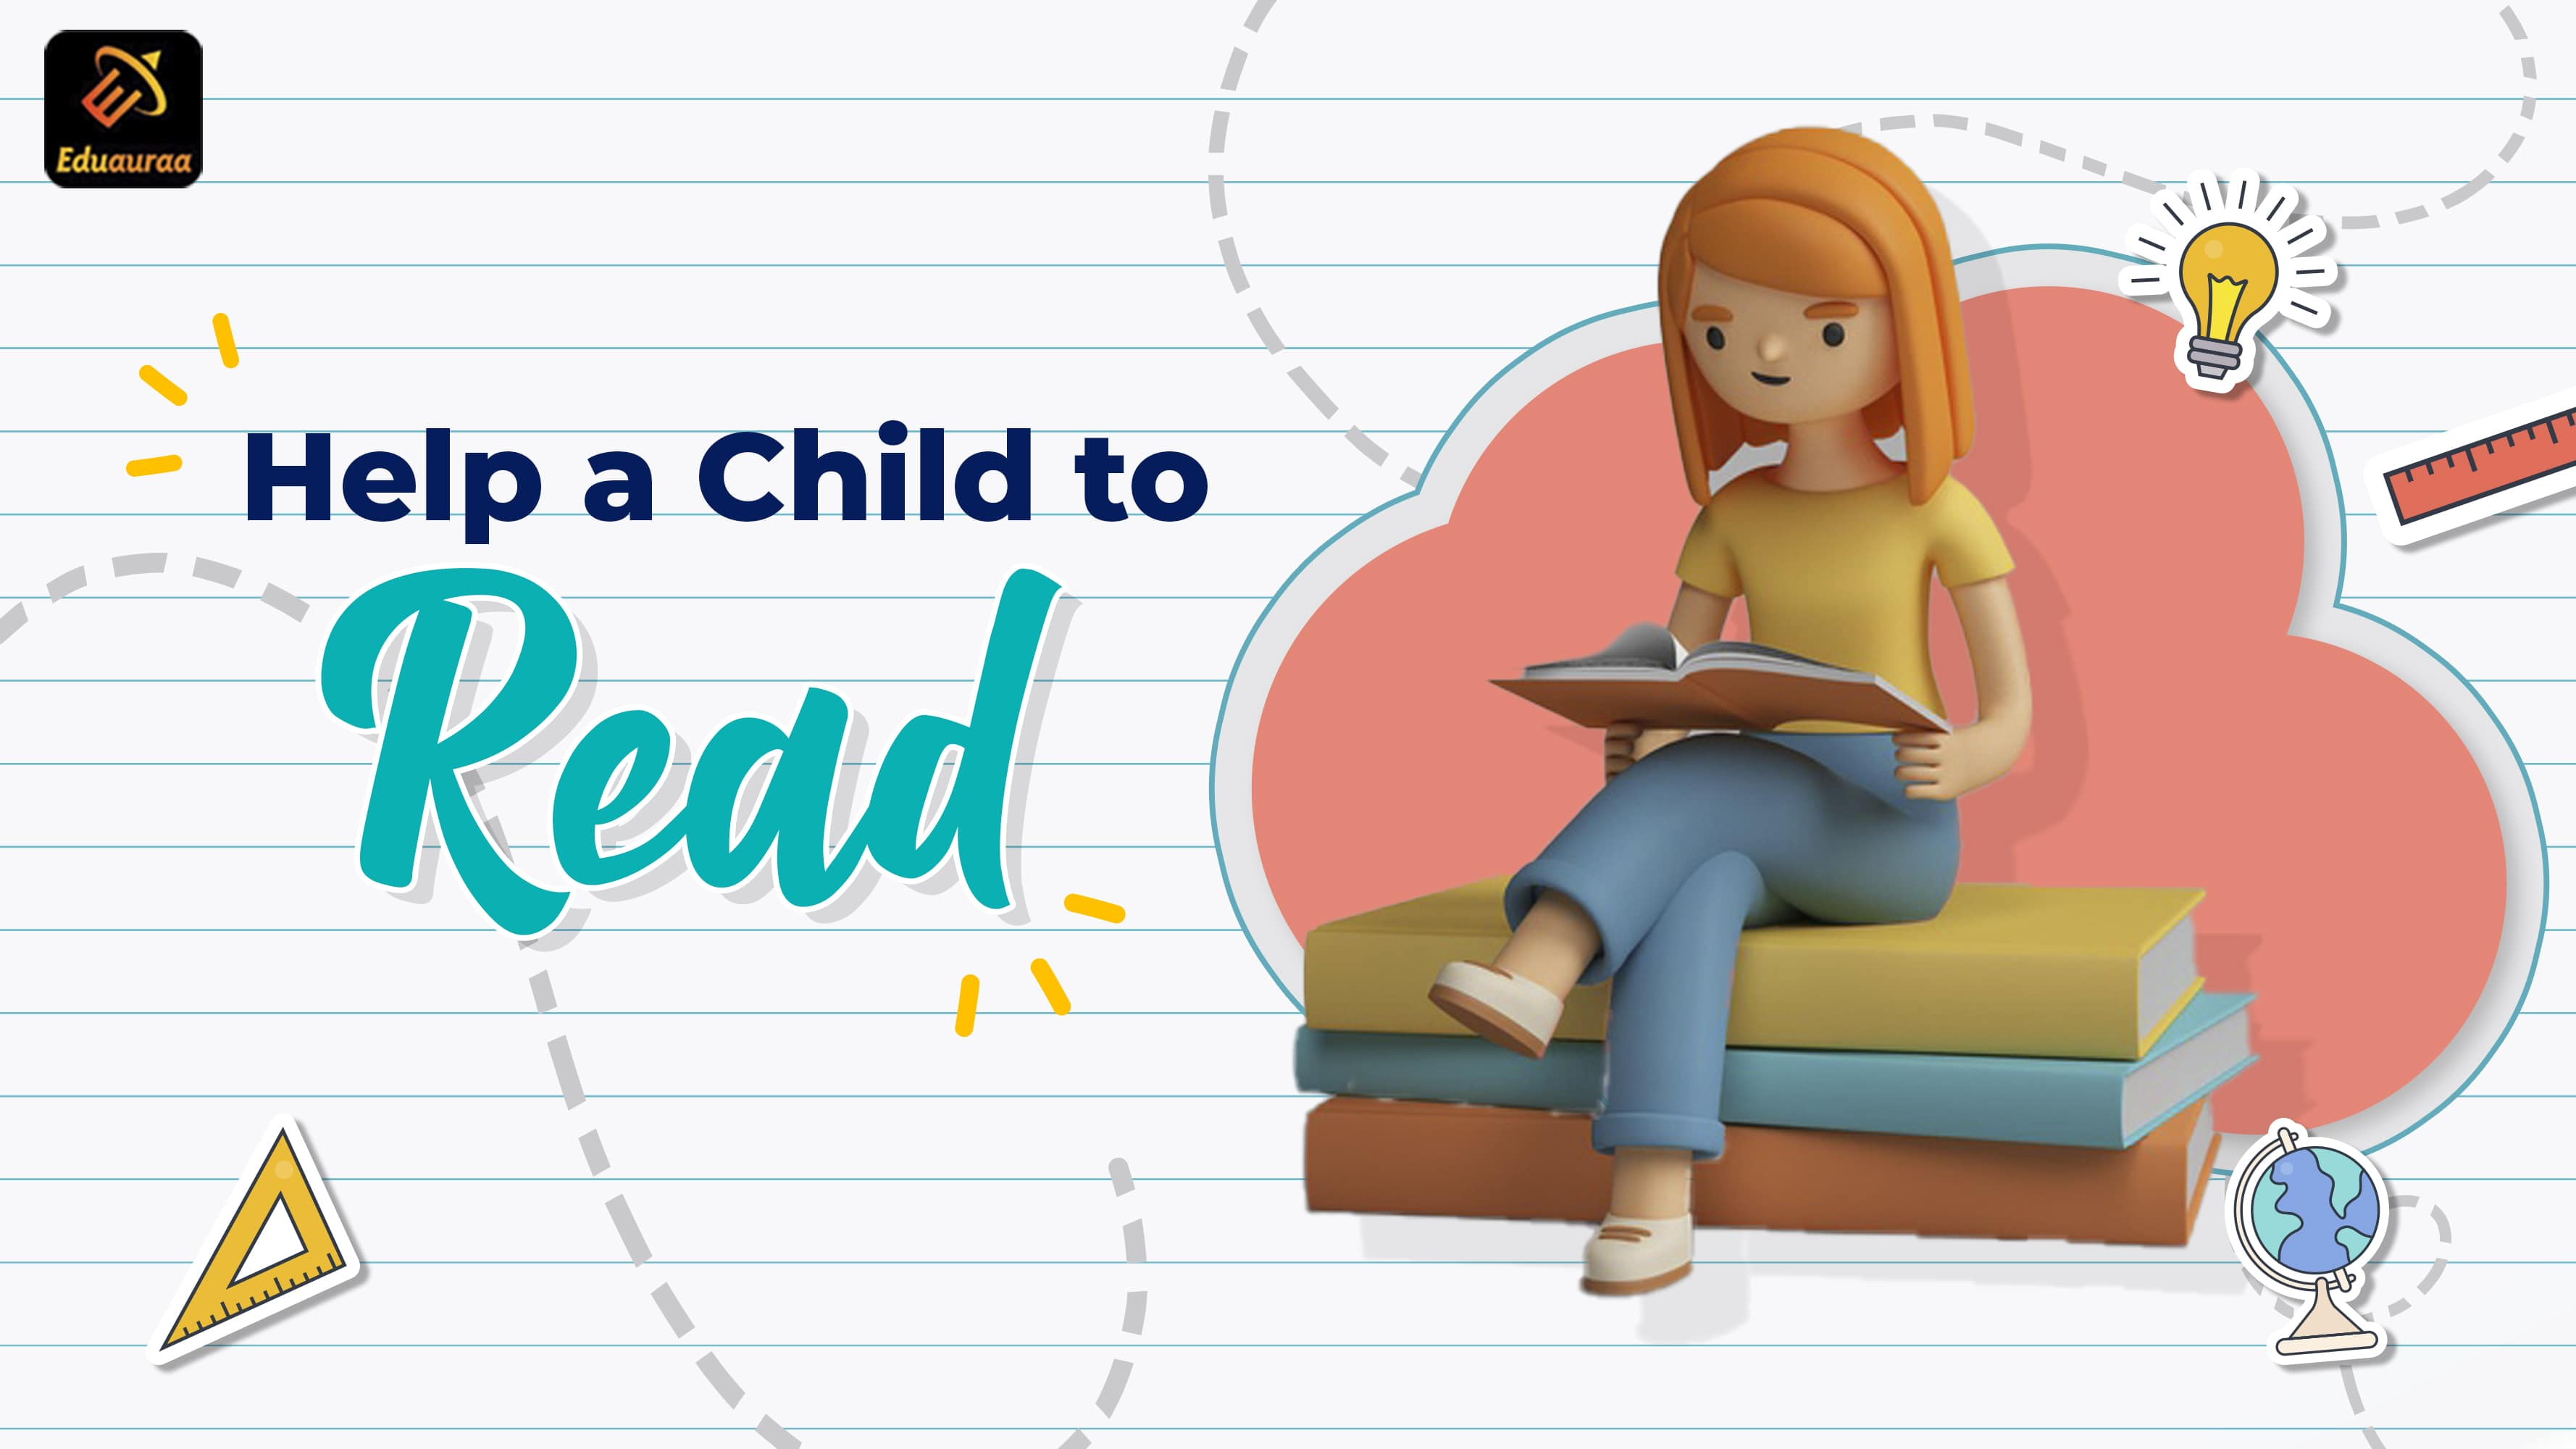 How to help a Child to Read